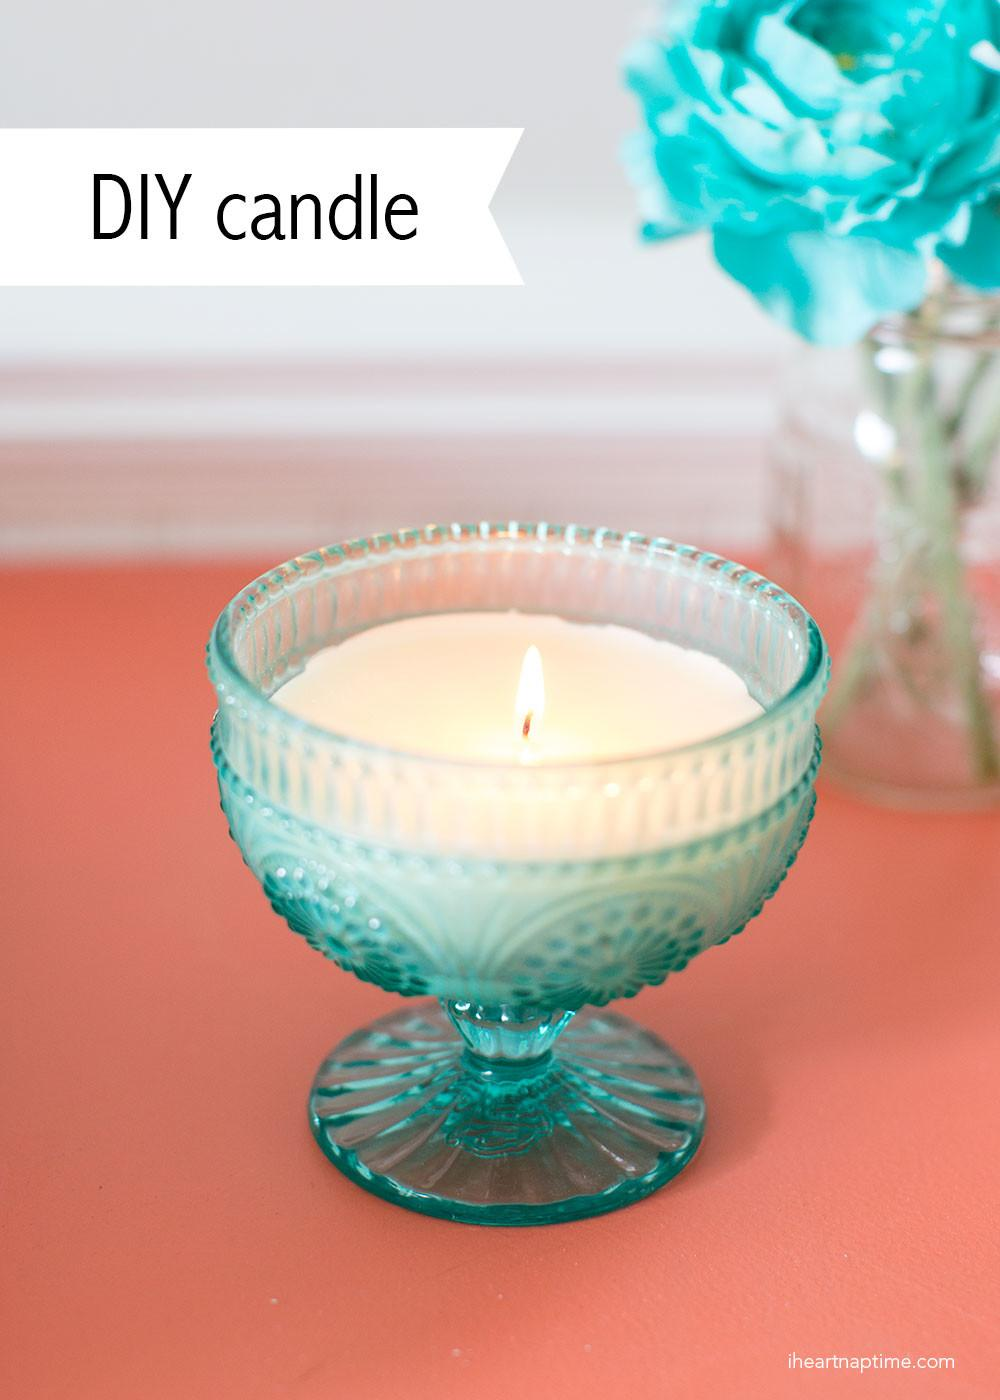 Homemade Candle Gift Idea Heart Nap Time